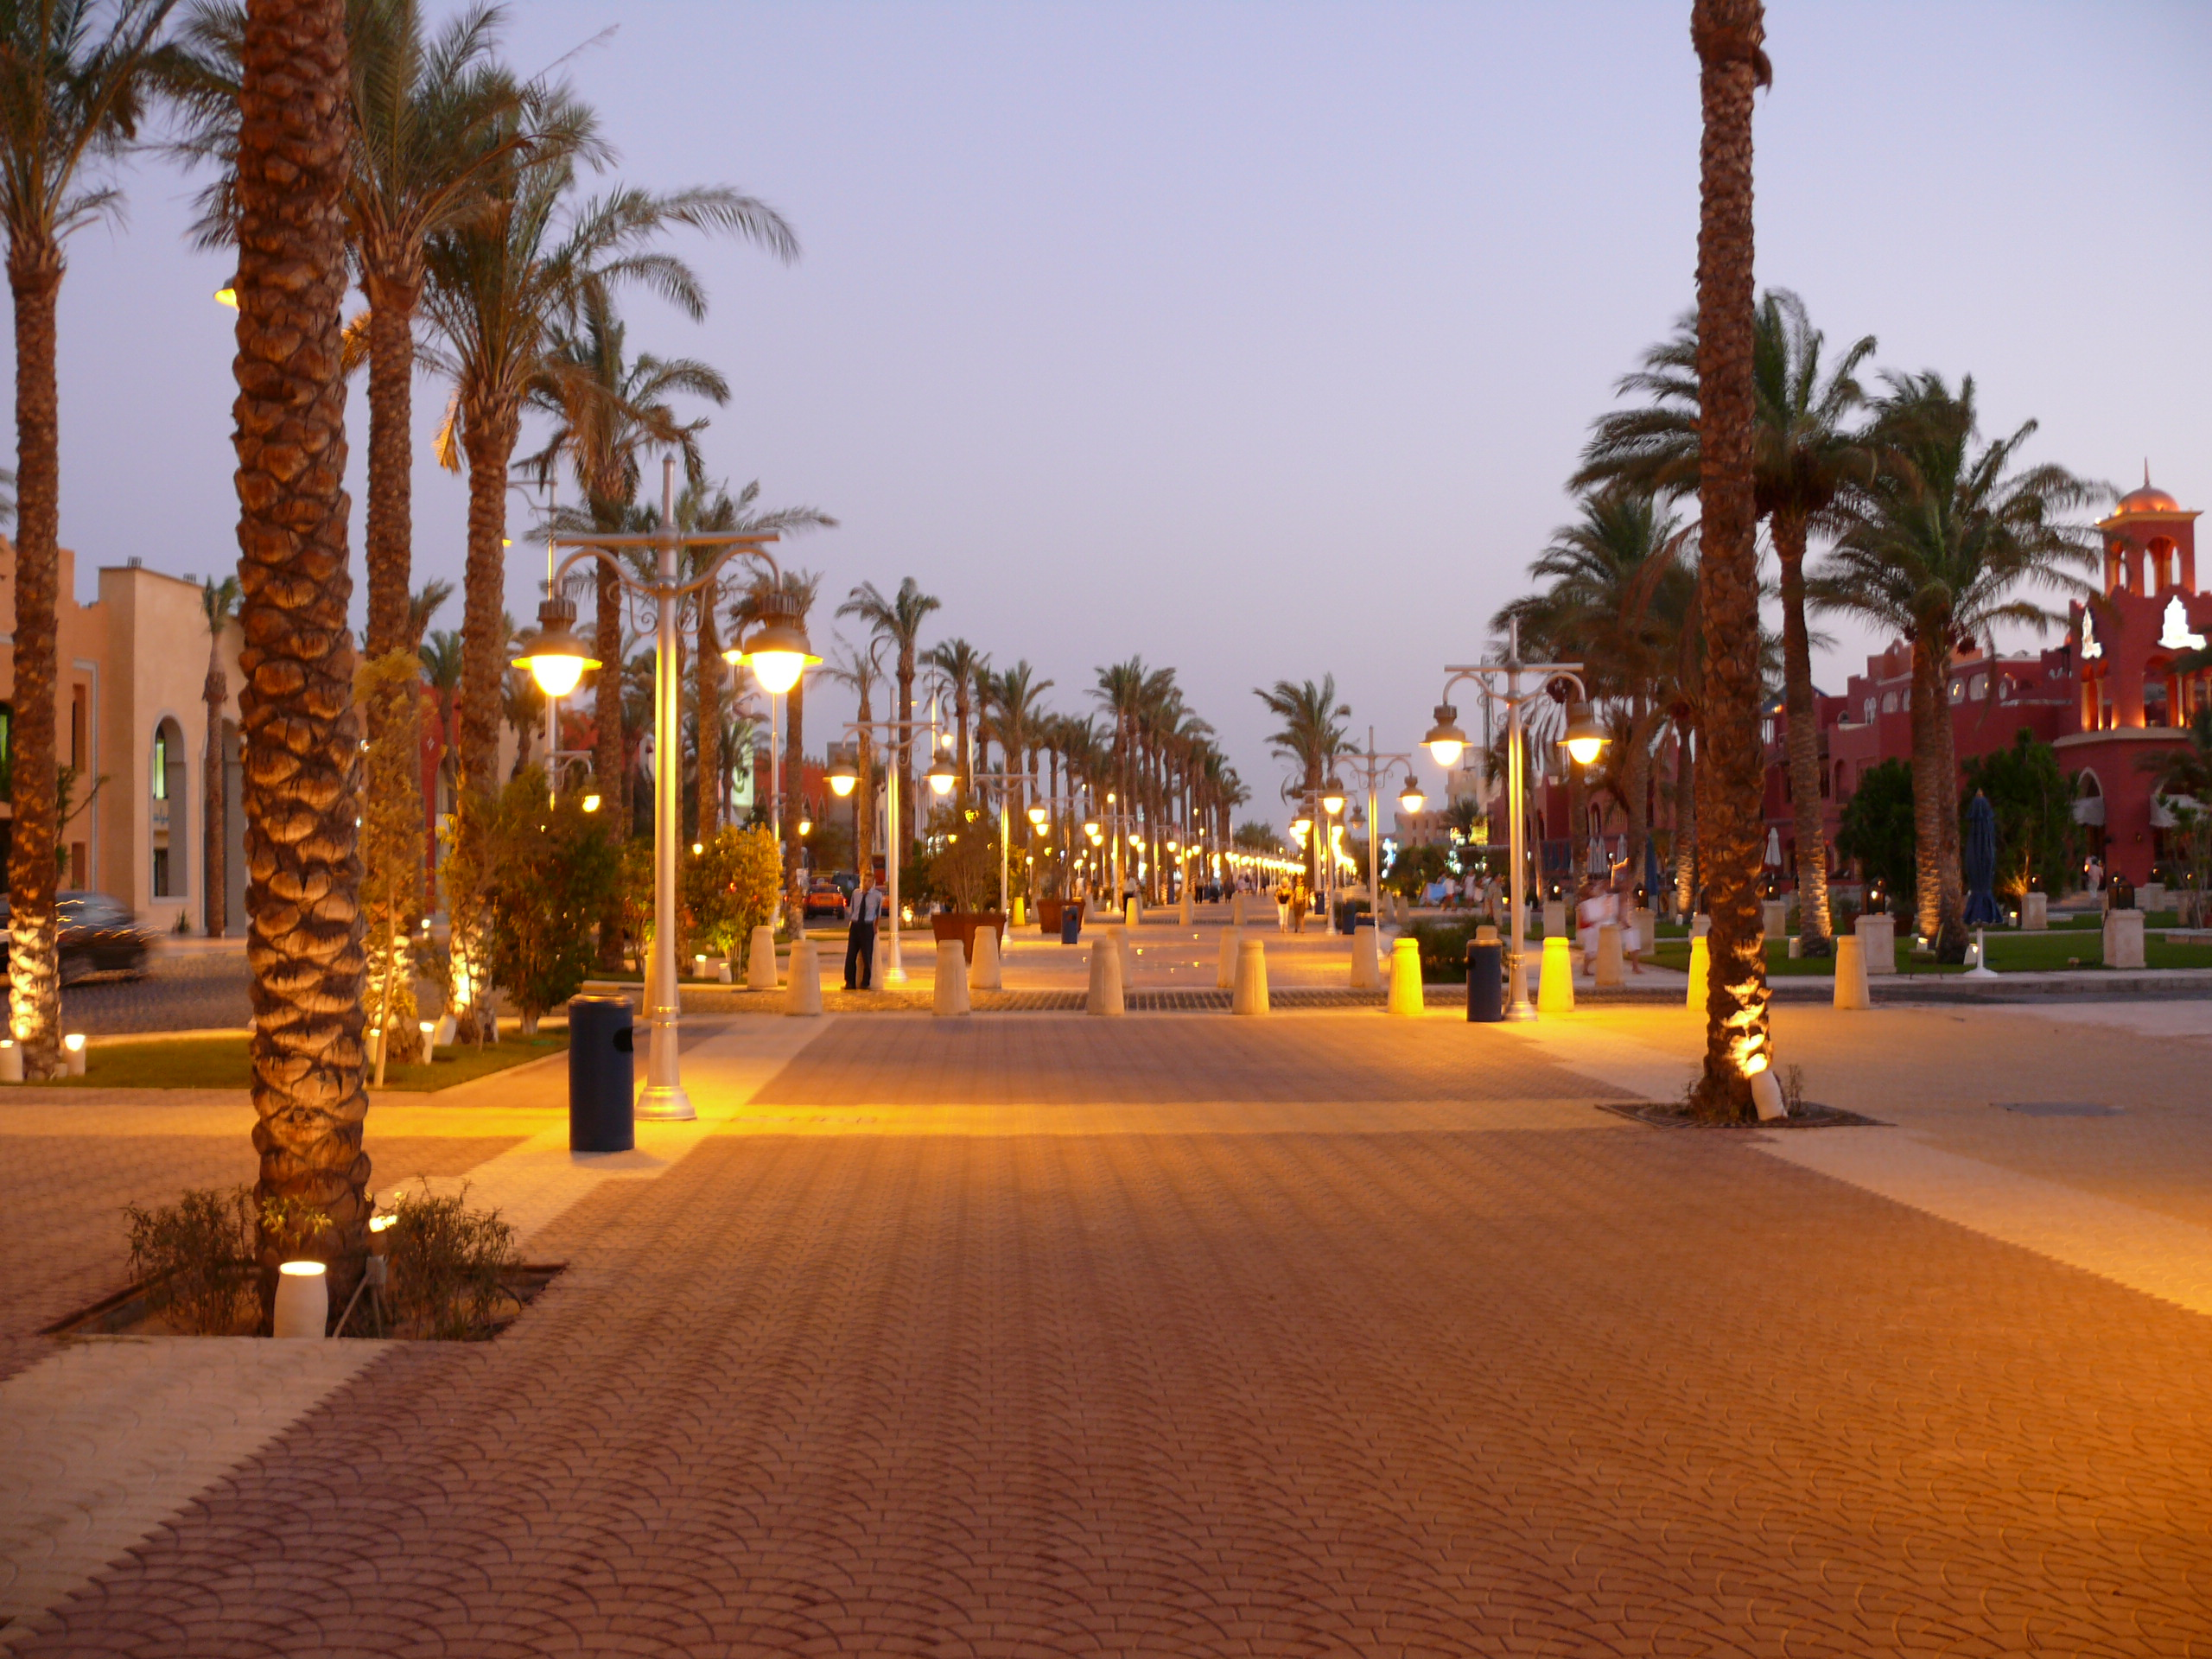 Resorts For A Magical Vacation in Hurghada